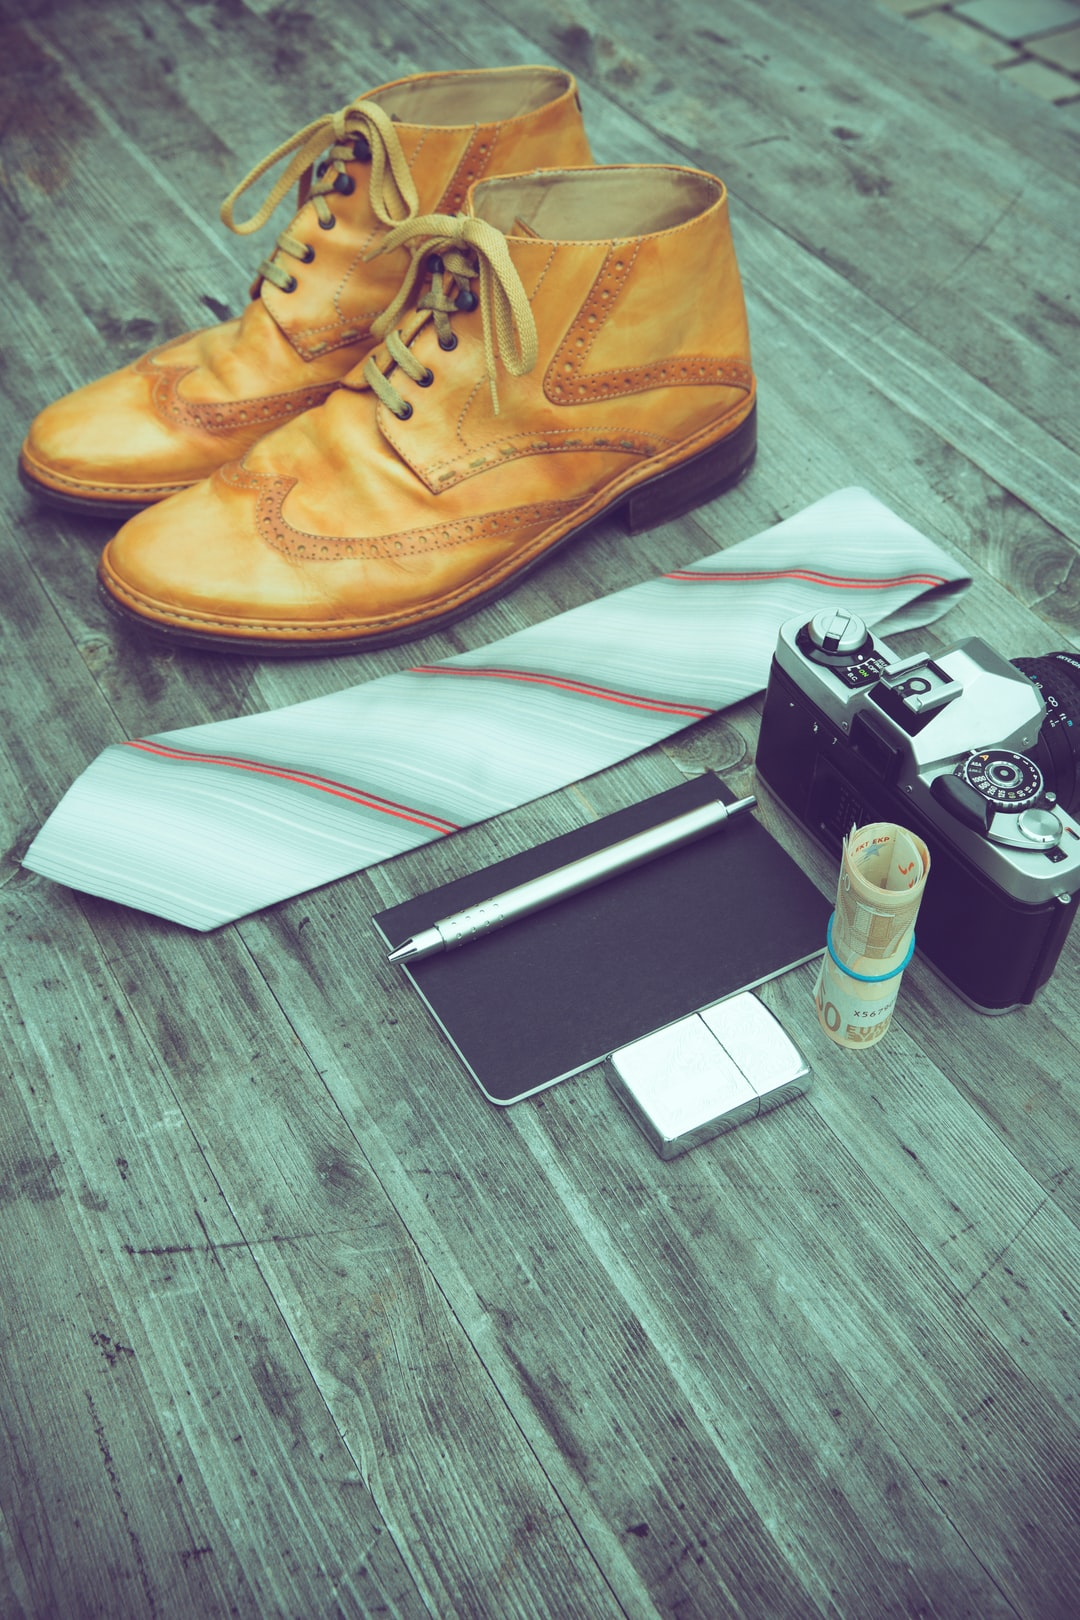 Handcraft italian leather laced boots, tie, vintage analog photo camera, notebook with silver pen, a roll of money and zippo fierstarter in flatlay.